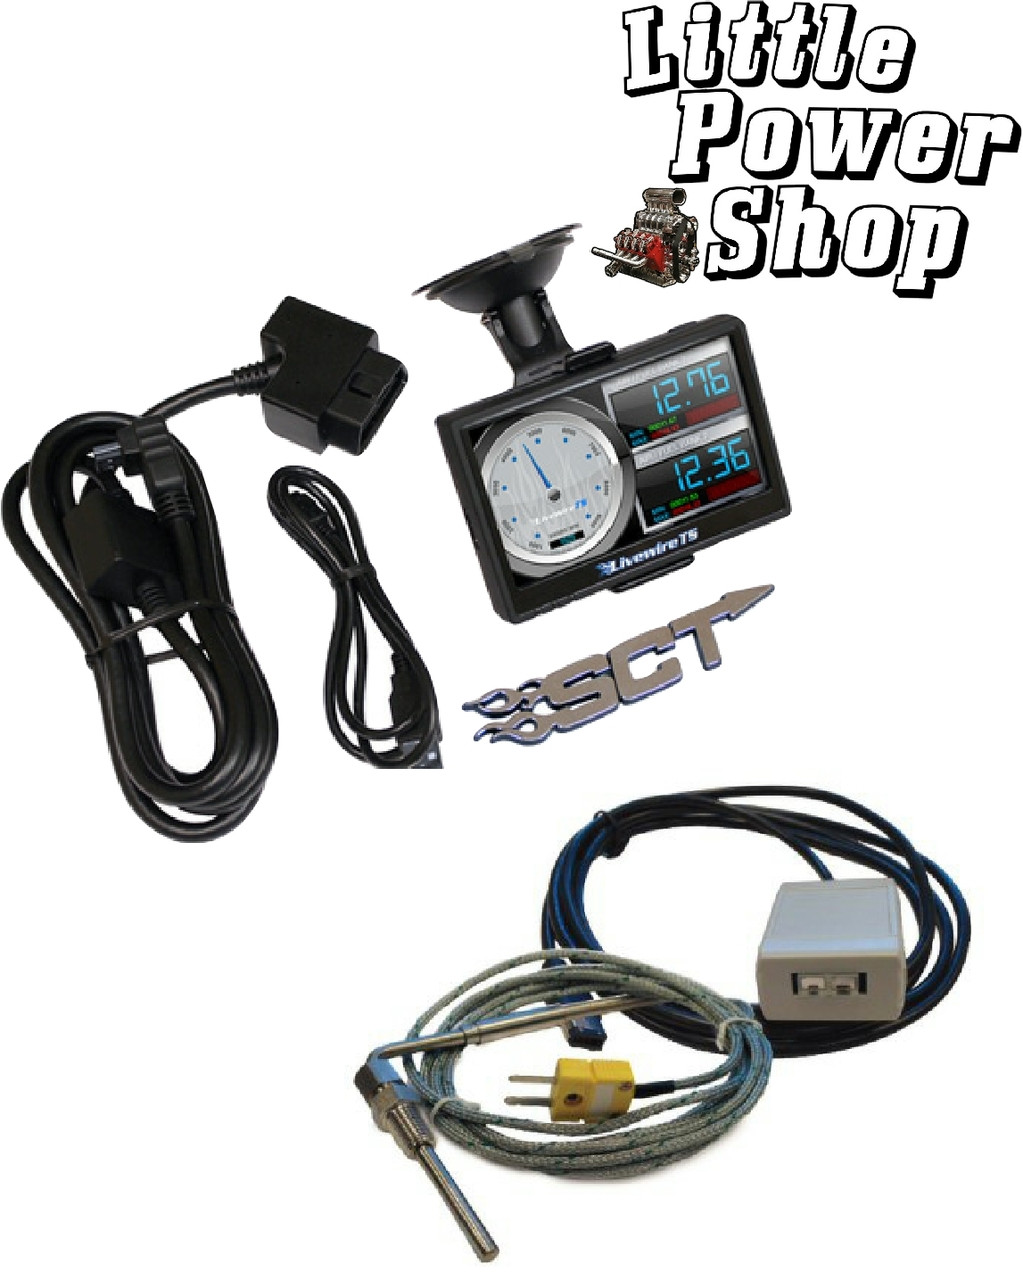 03-07 Ford 6.0 Powerstroke SCT Livewire Programmer and Pyrometer Kit